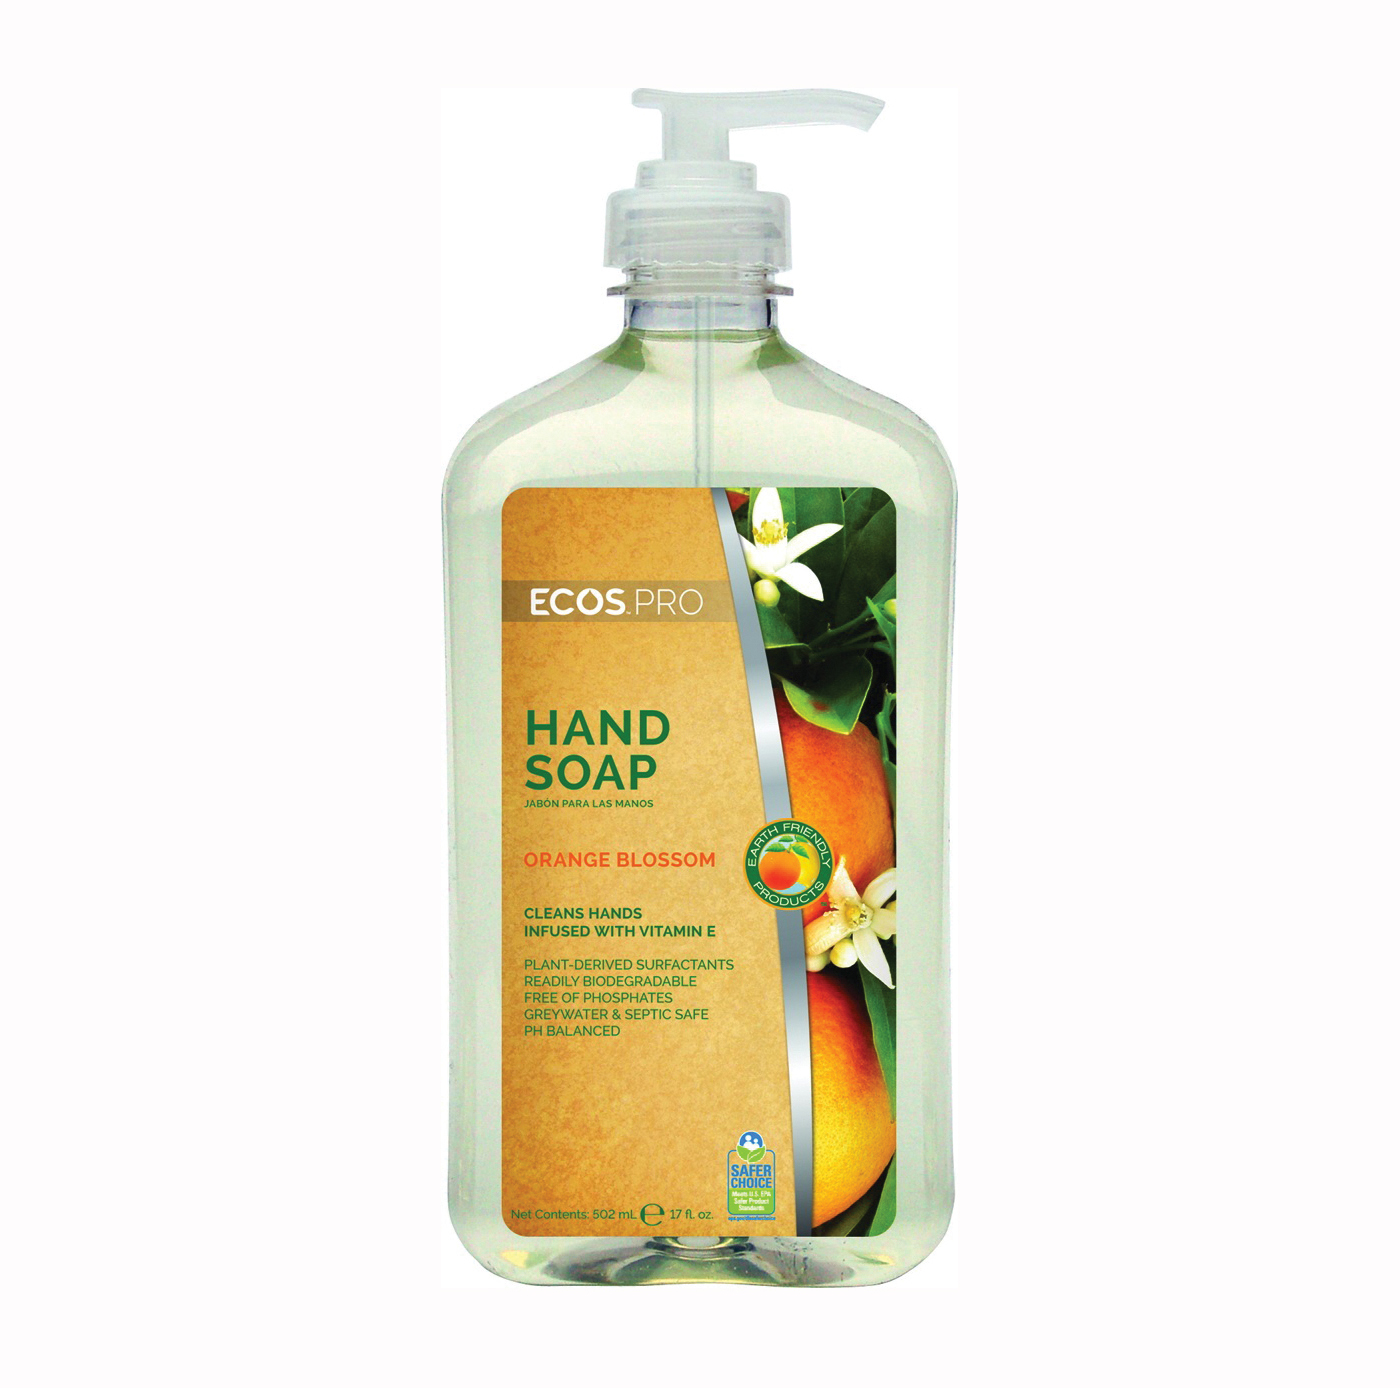 Picture of ECOS PL9484/6 Hand Soap Clear, Liquid, Clear, Floral, 17 oz Package, Bottle